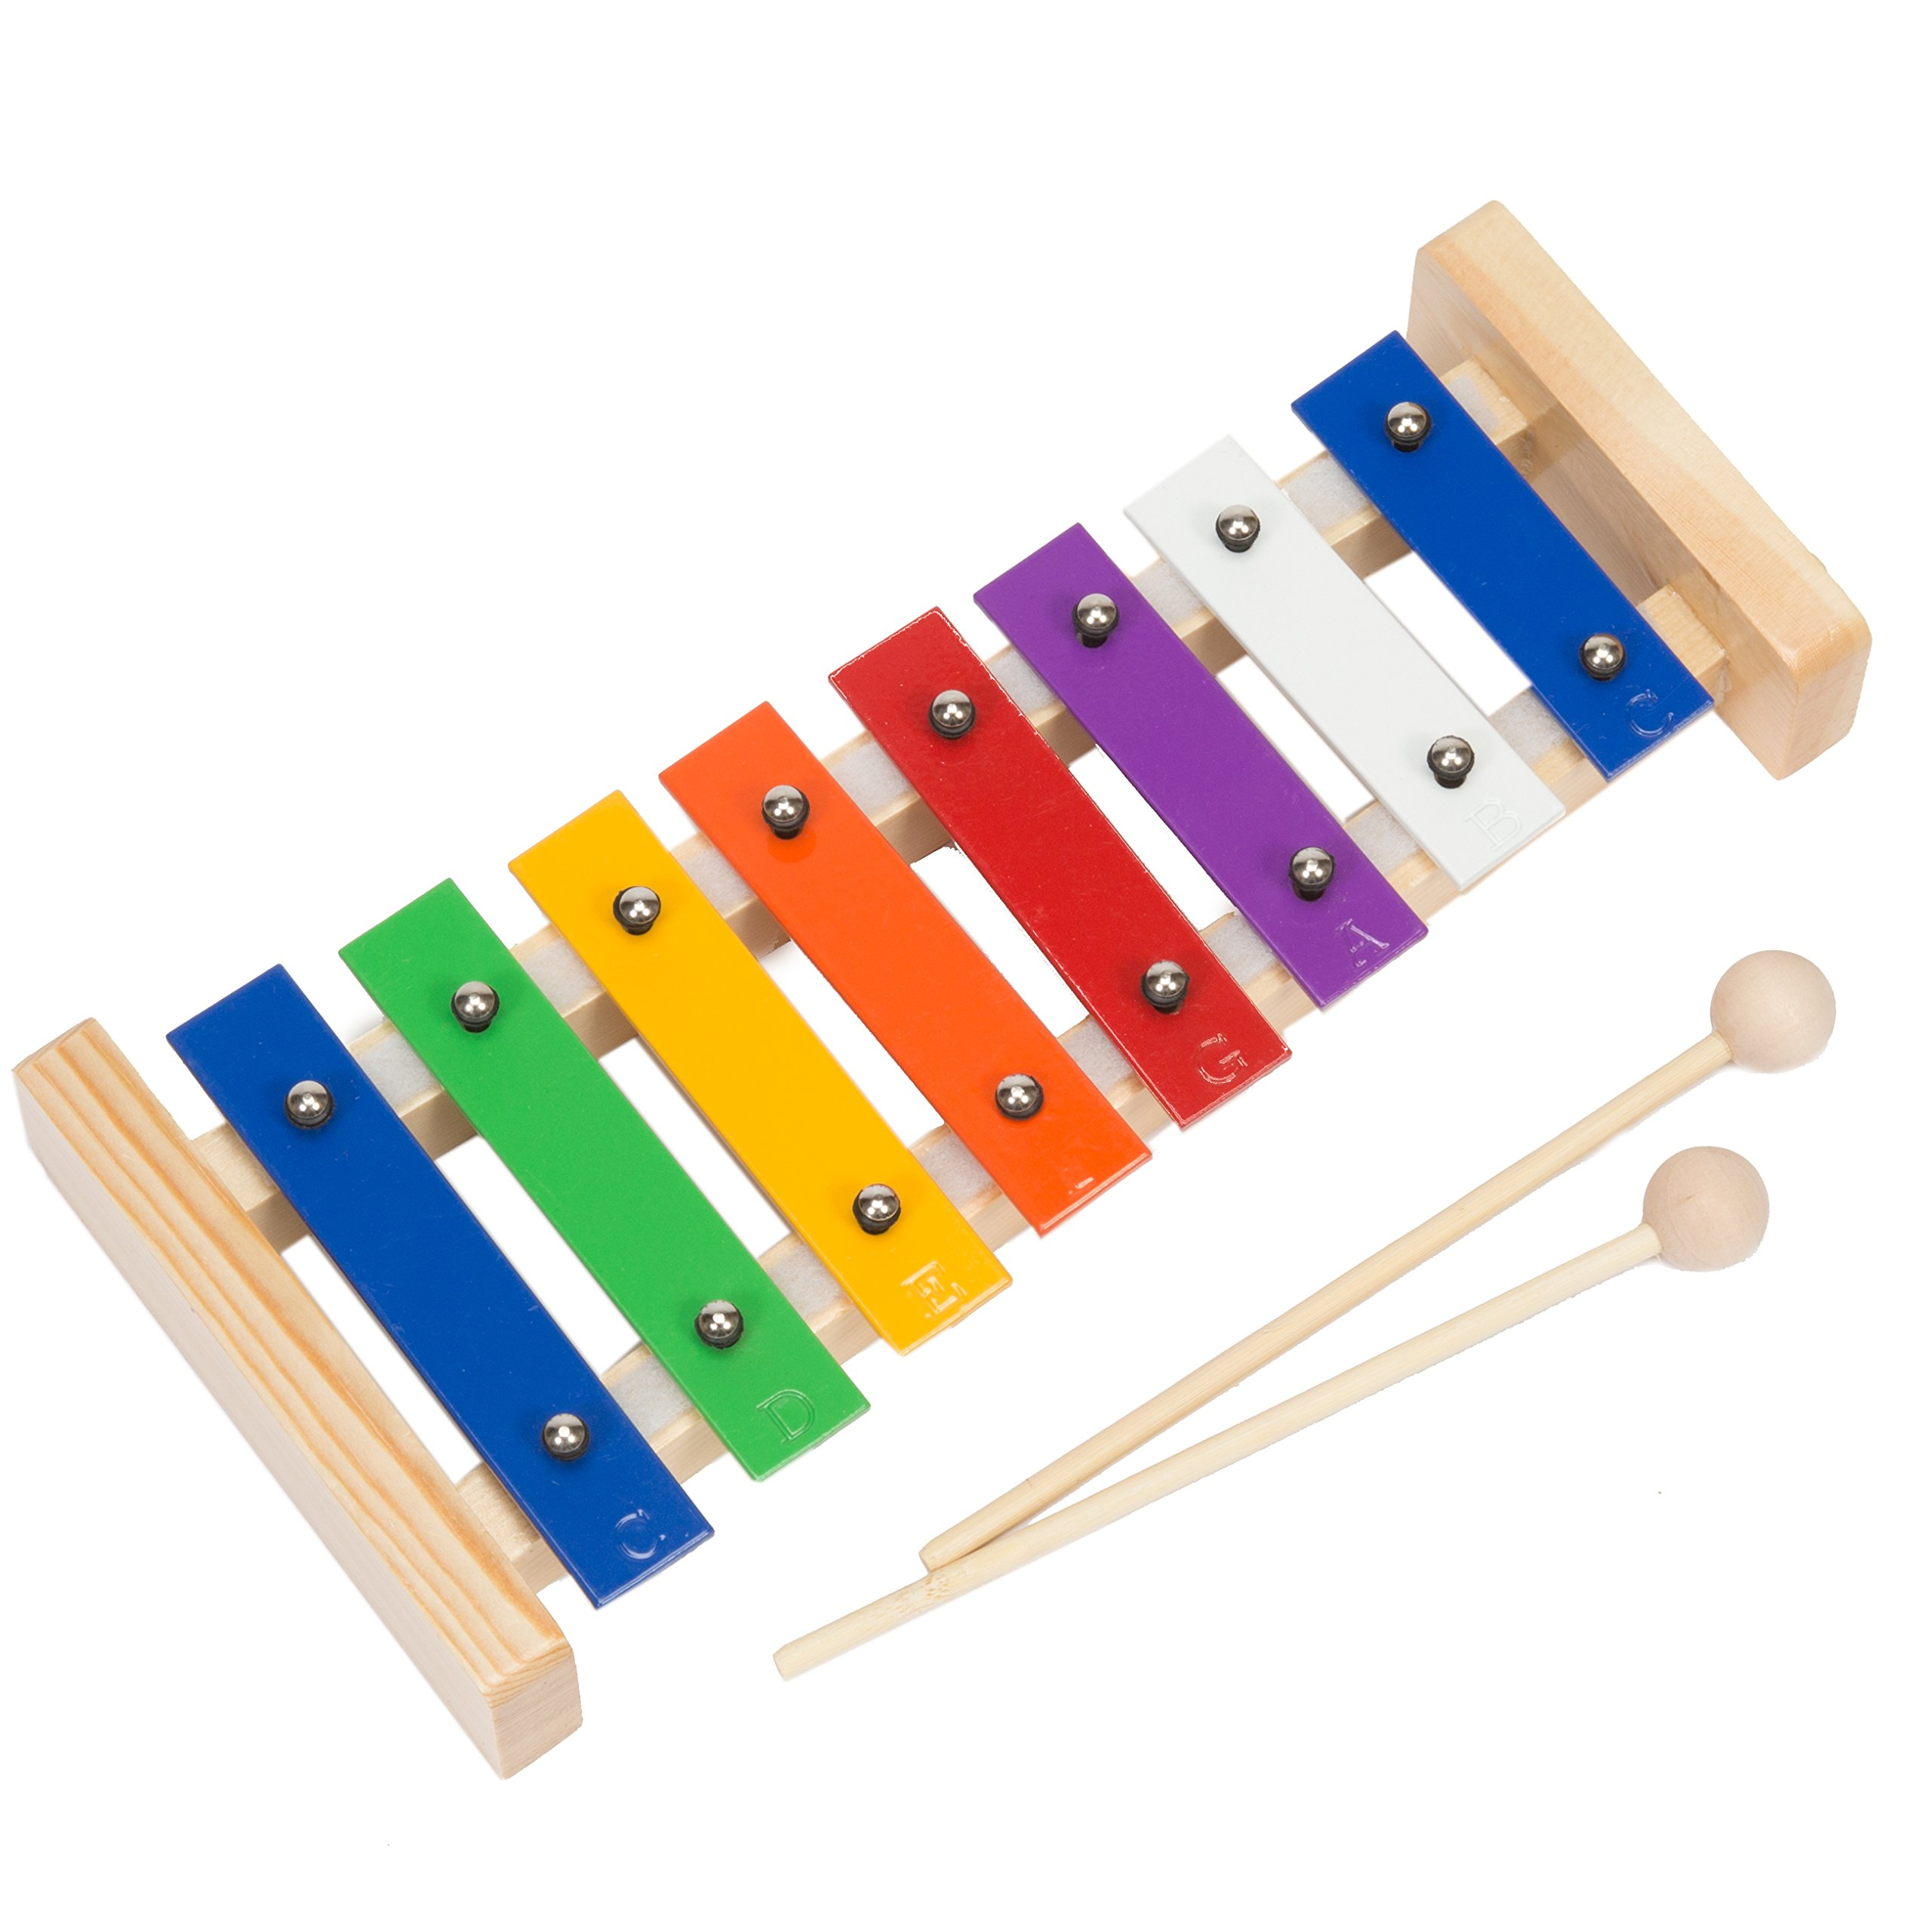 Upado Unlimited Glockenspiel Xylophone, Tuned Musical Instrument Includes 2 Wooden Mallets and 12 Page Introductory Popular 8 Note Songs Music Pattern Song Book by ZJTL